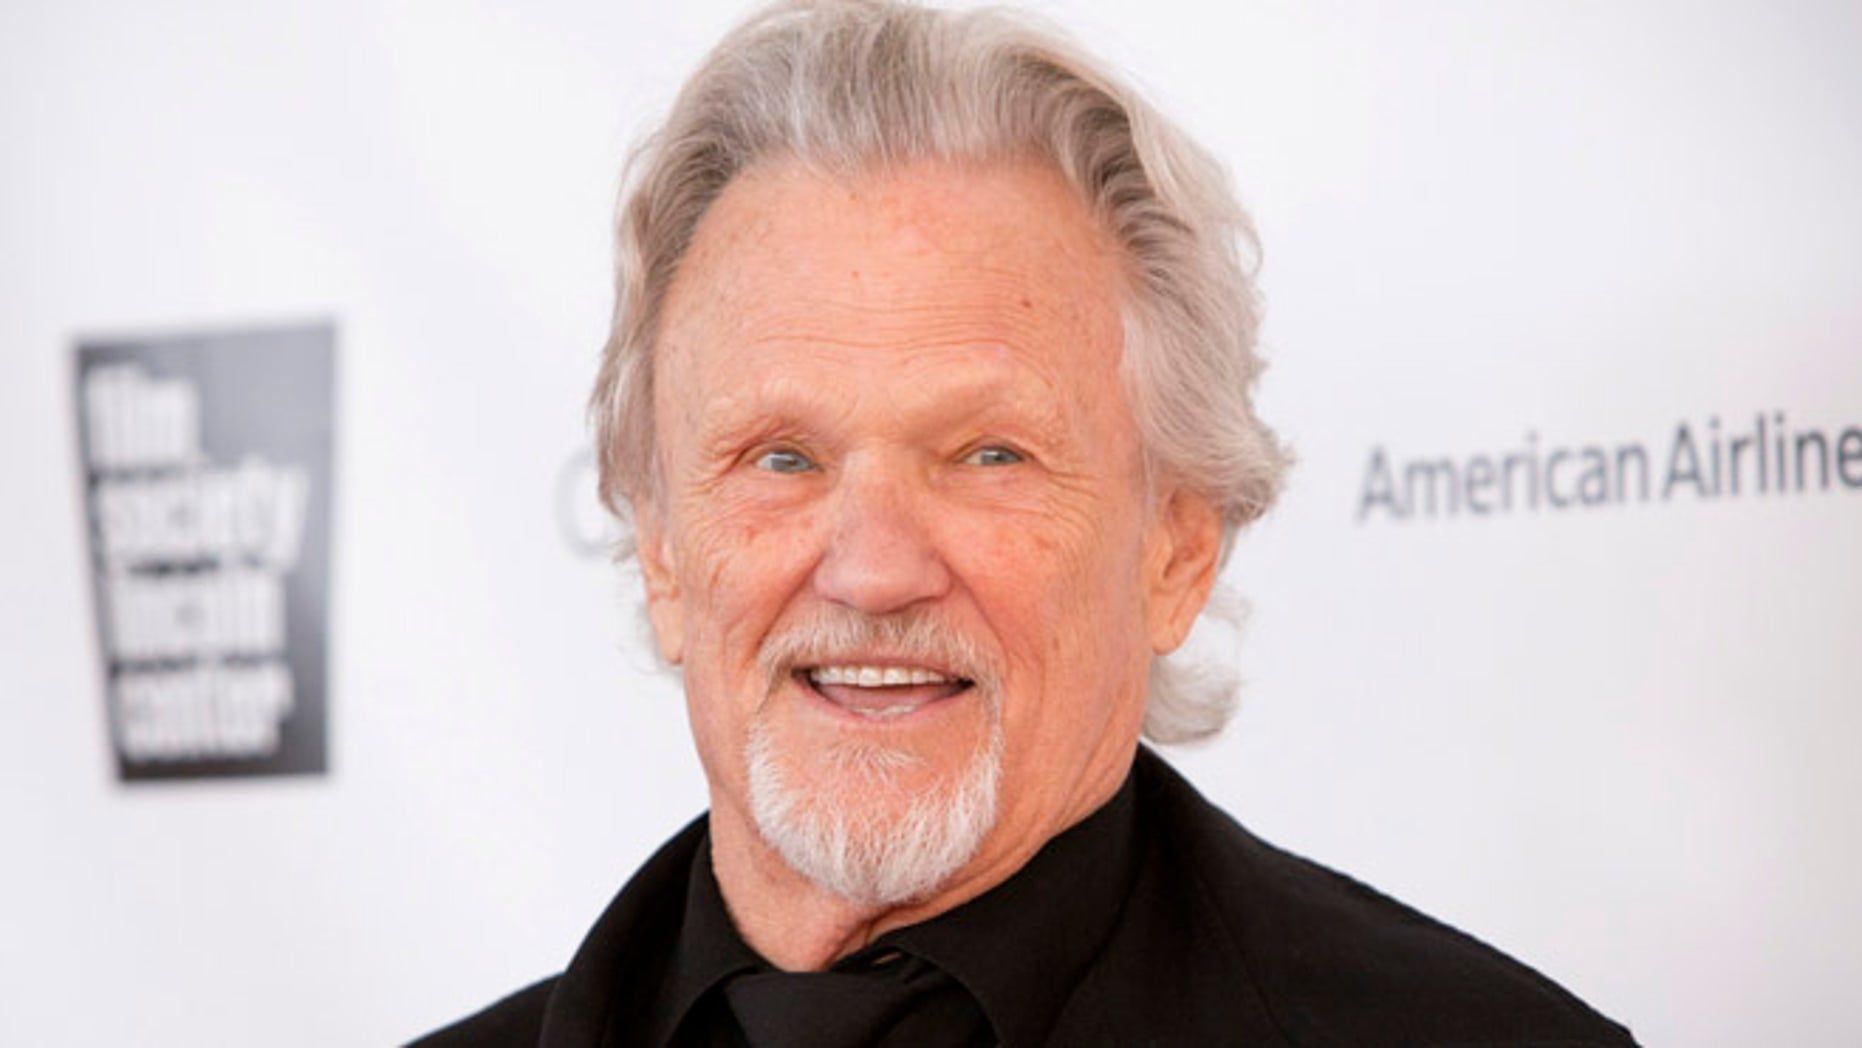 Kris Kristofferson attends the 40th Anniversary Chaplin Award Gala at Avery Fisher Hall at Lincoln Center for the Performing Arts in New York April 22, 2013. REUTERS/Andrew Kelly (UNITED STATES - Tags: ENTERTAINMENT) - RTXYWB5